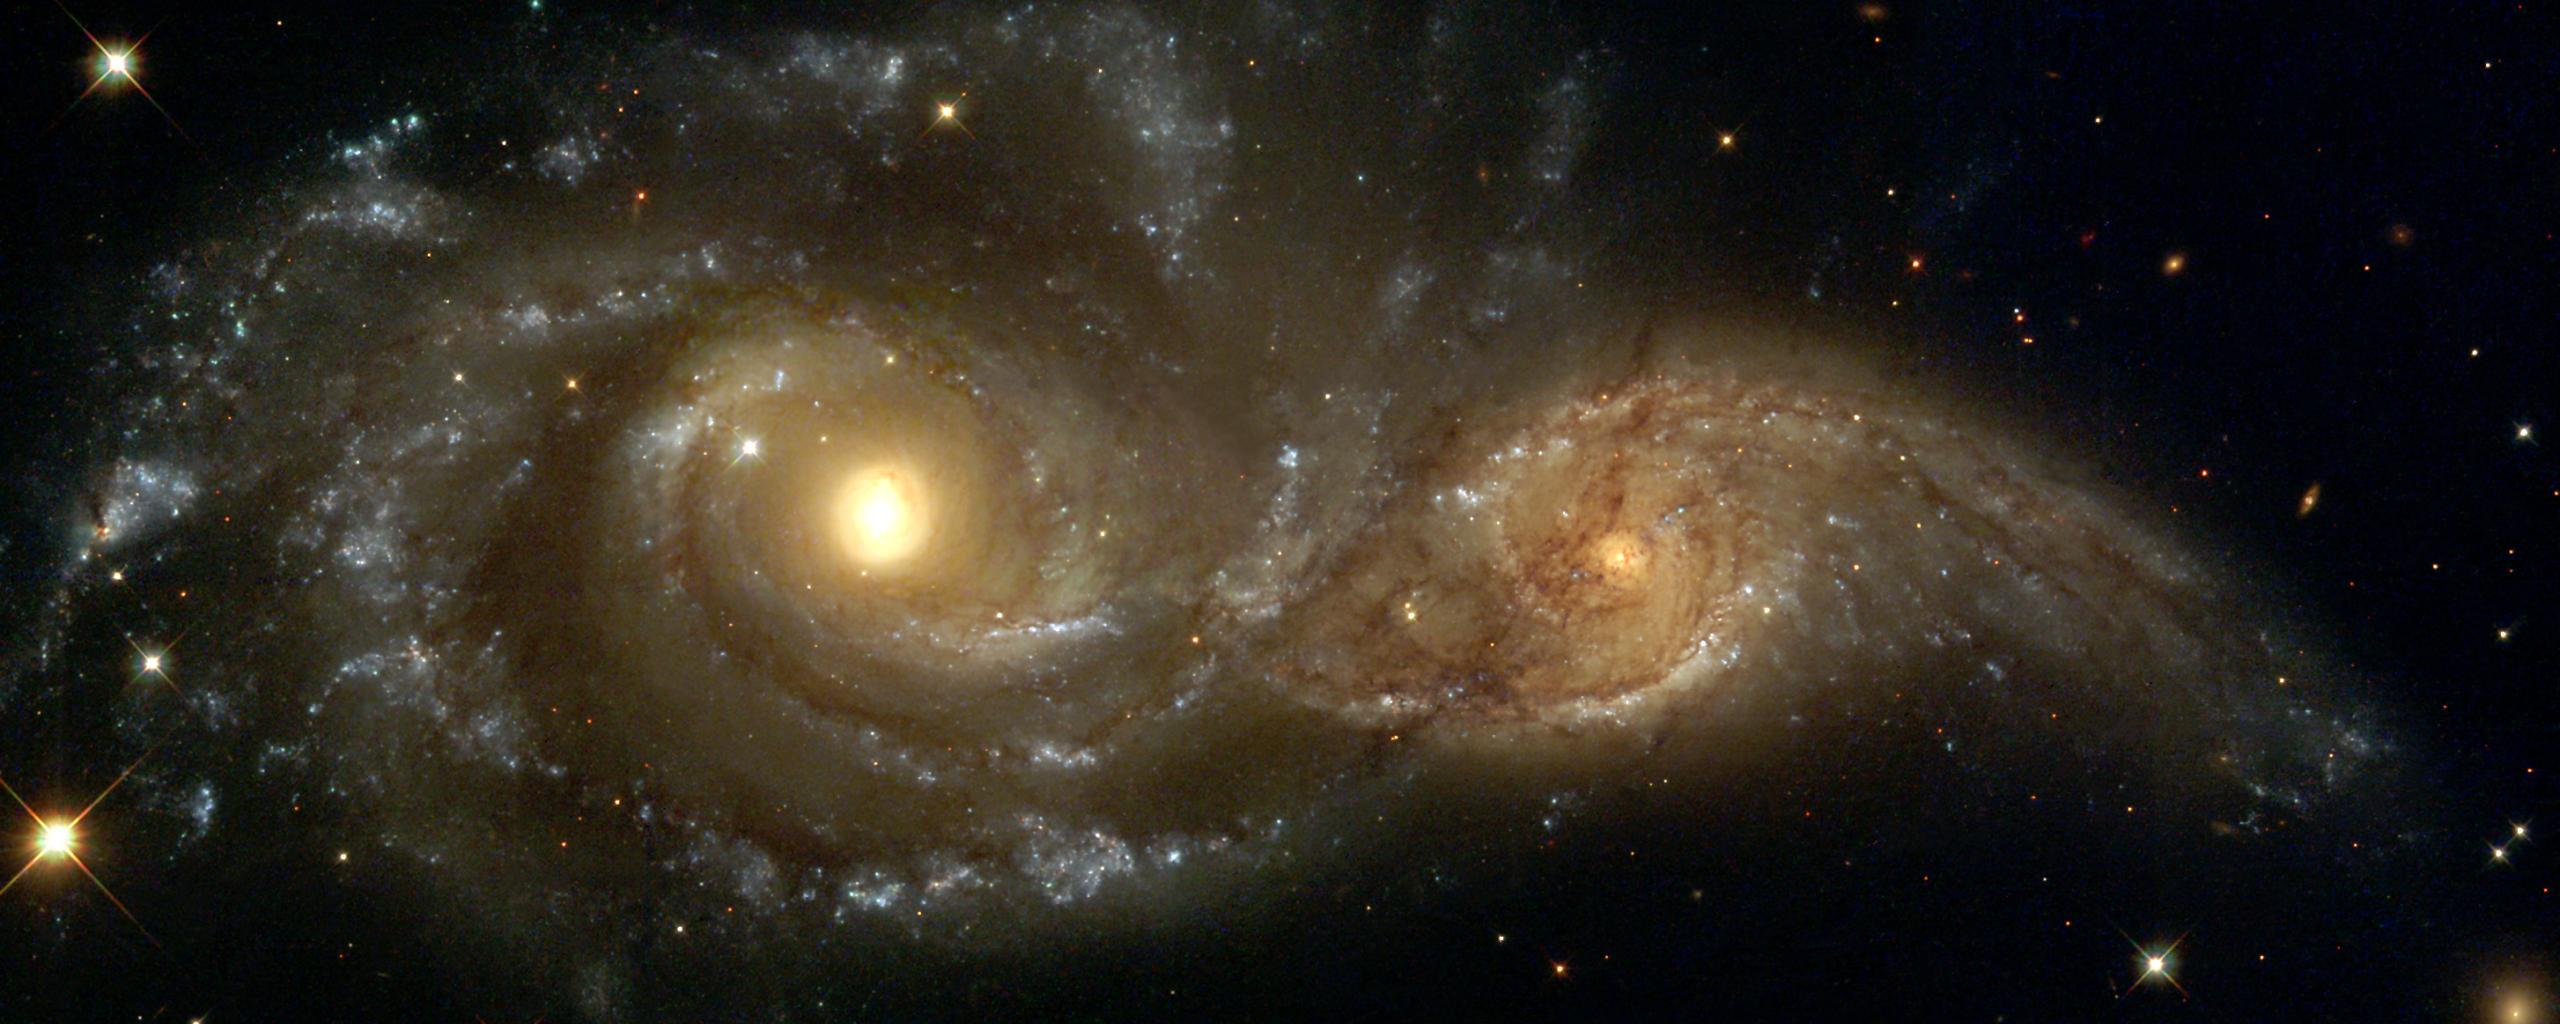 grazing galaxies dancing galaxys HD Wallpaper